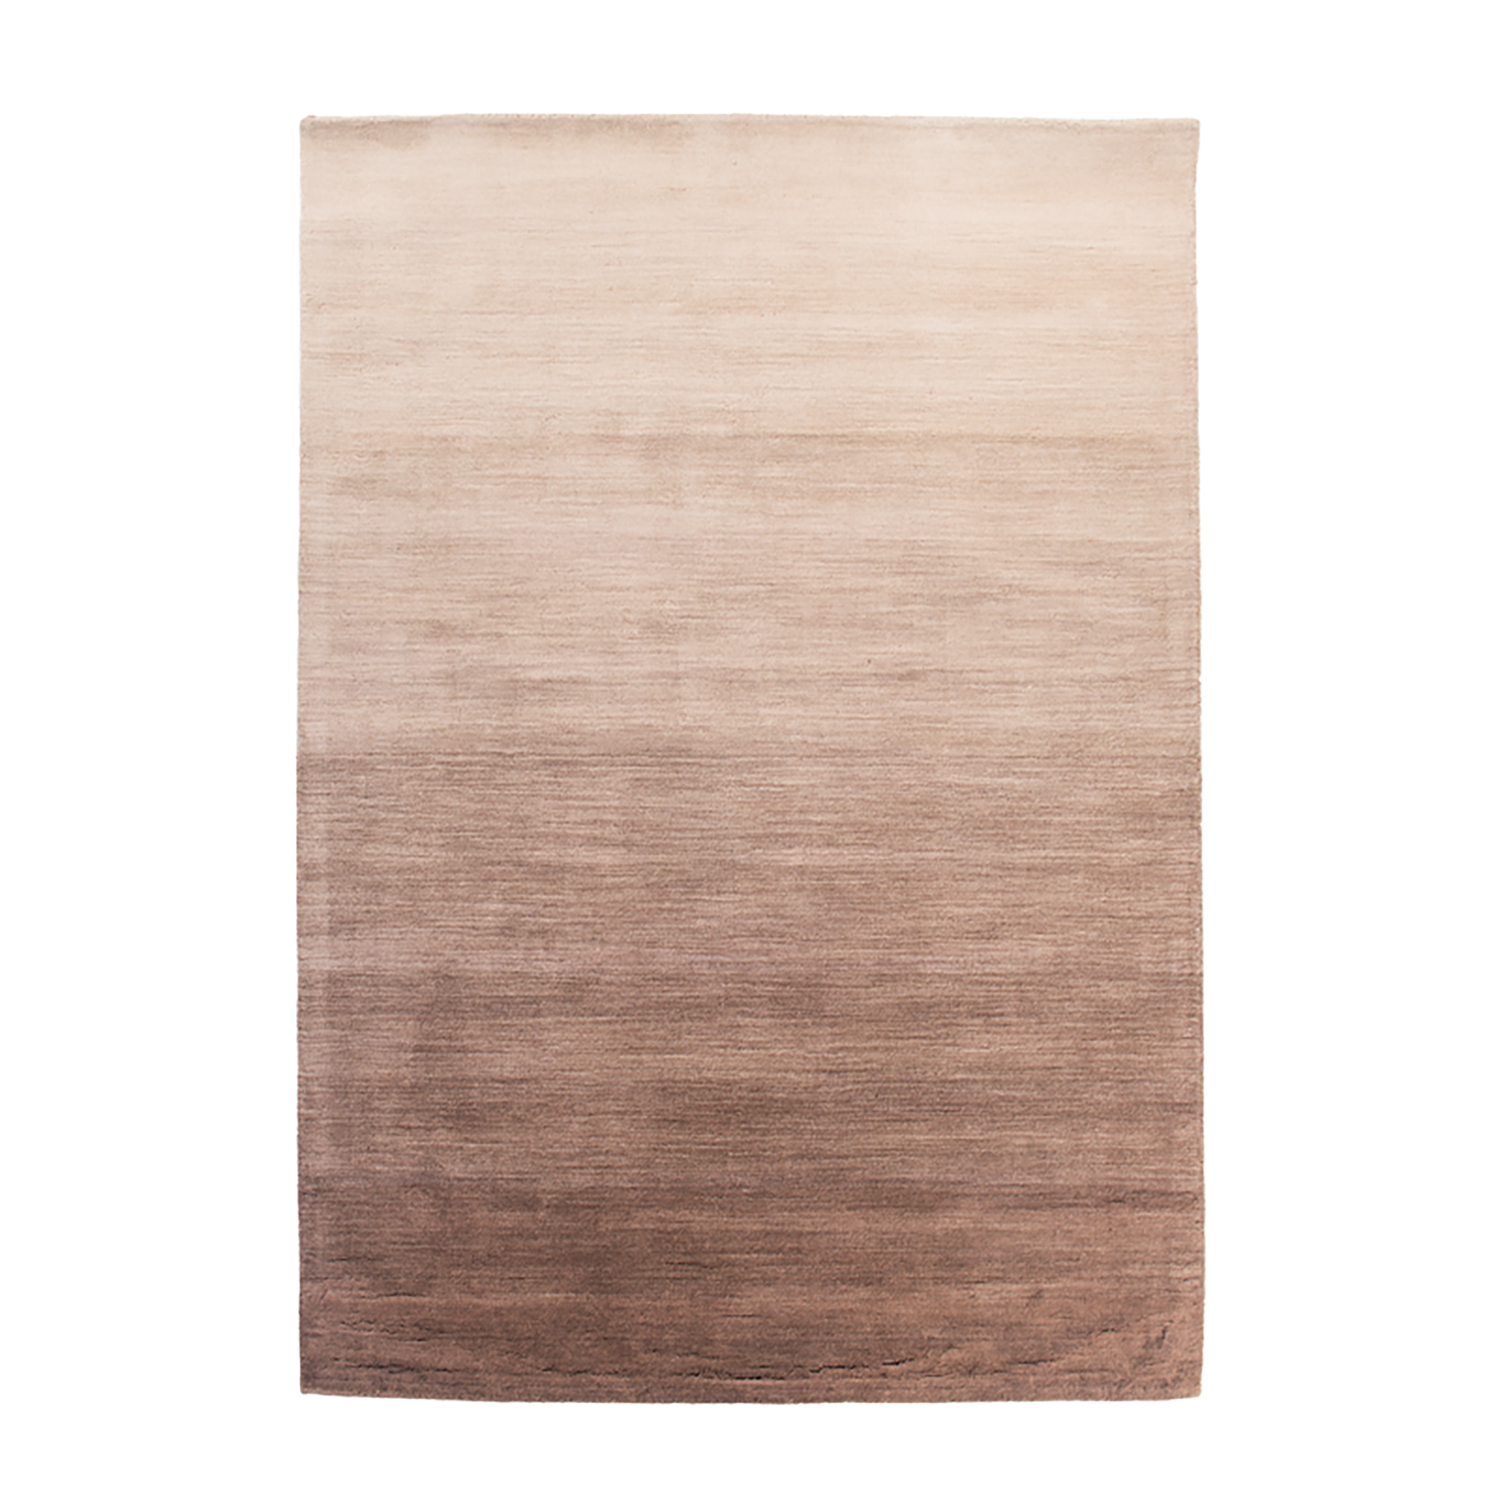 Decofurn Furniture Dexter Rug 160x230cm